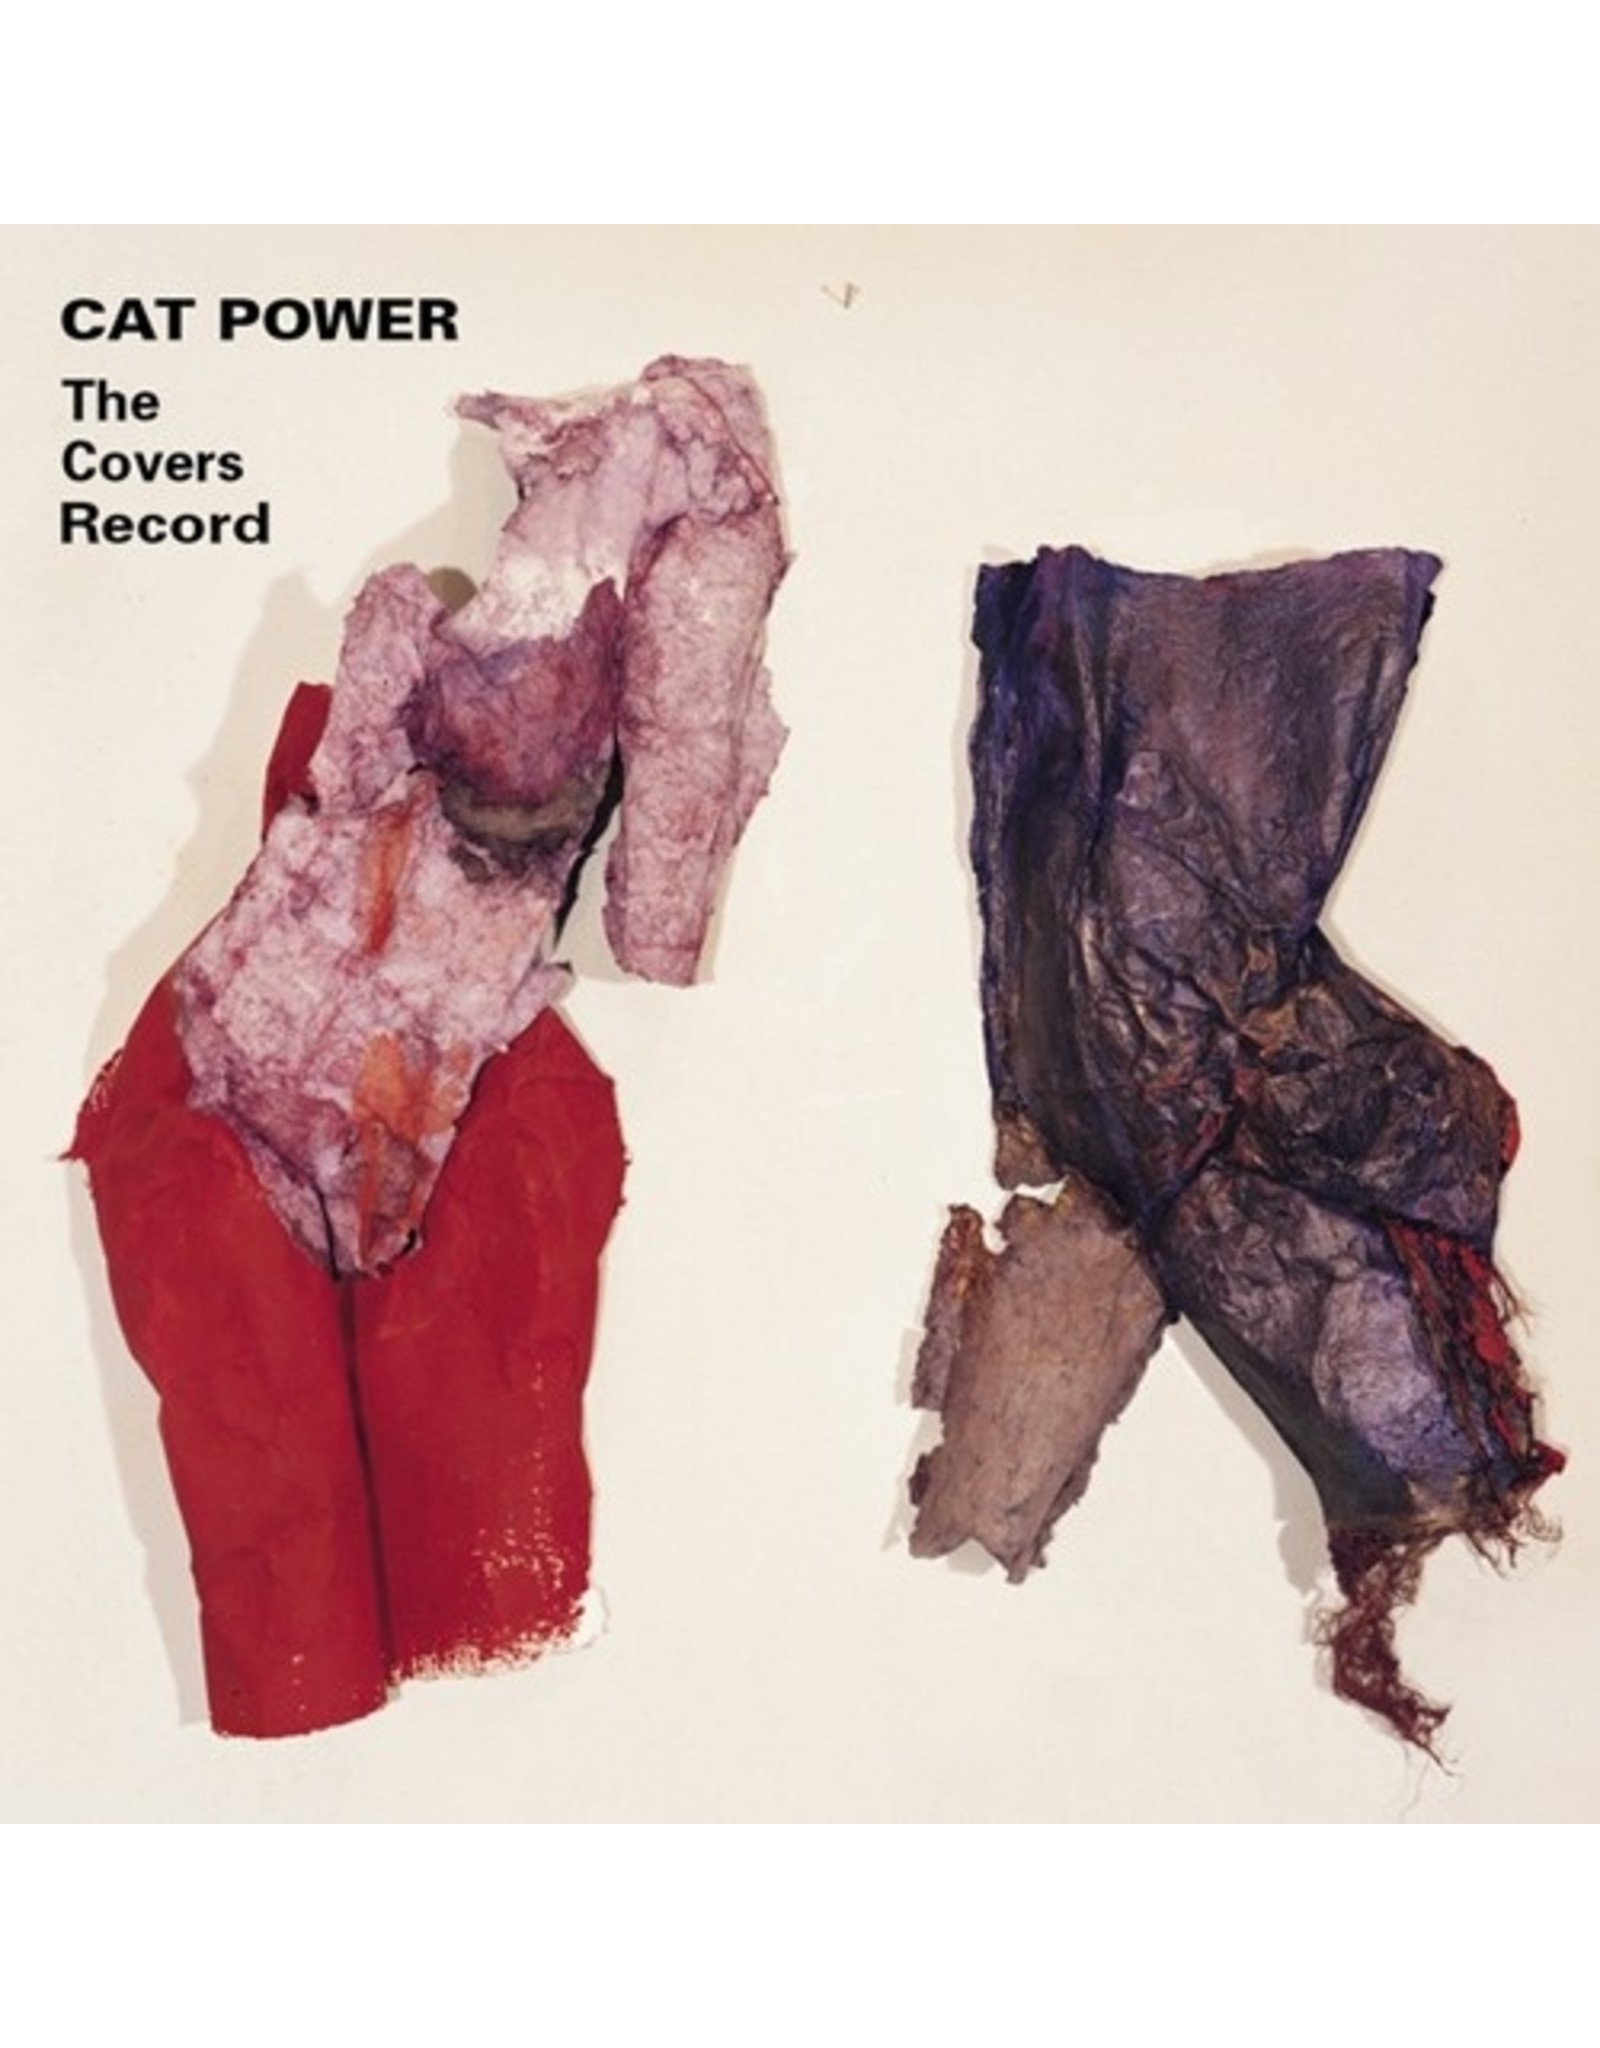 New Vinyl Cat Power - The Covers Record LP